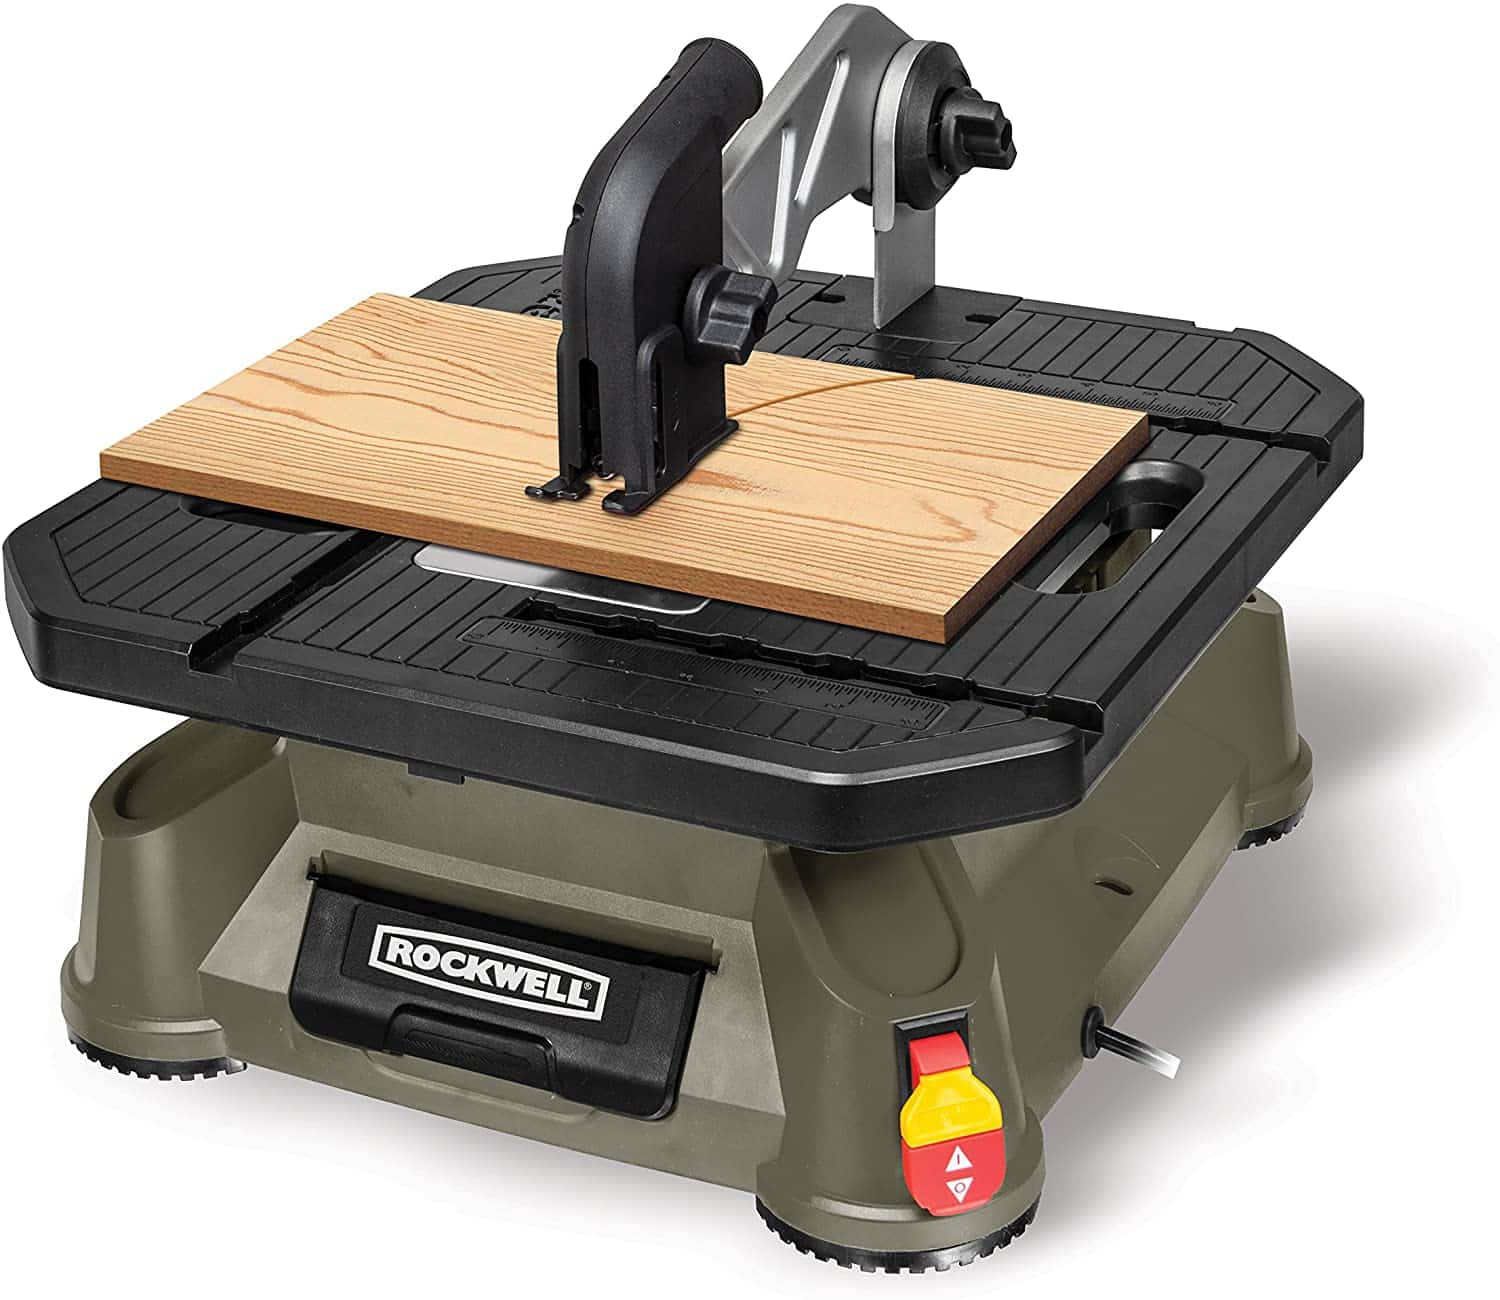 Rockwell BladeRunner X2 Table Saw - RK7323